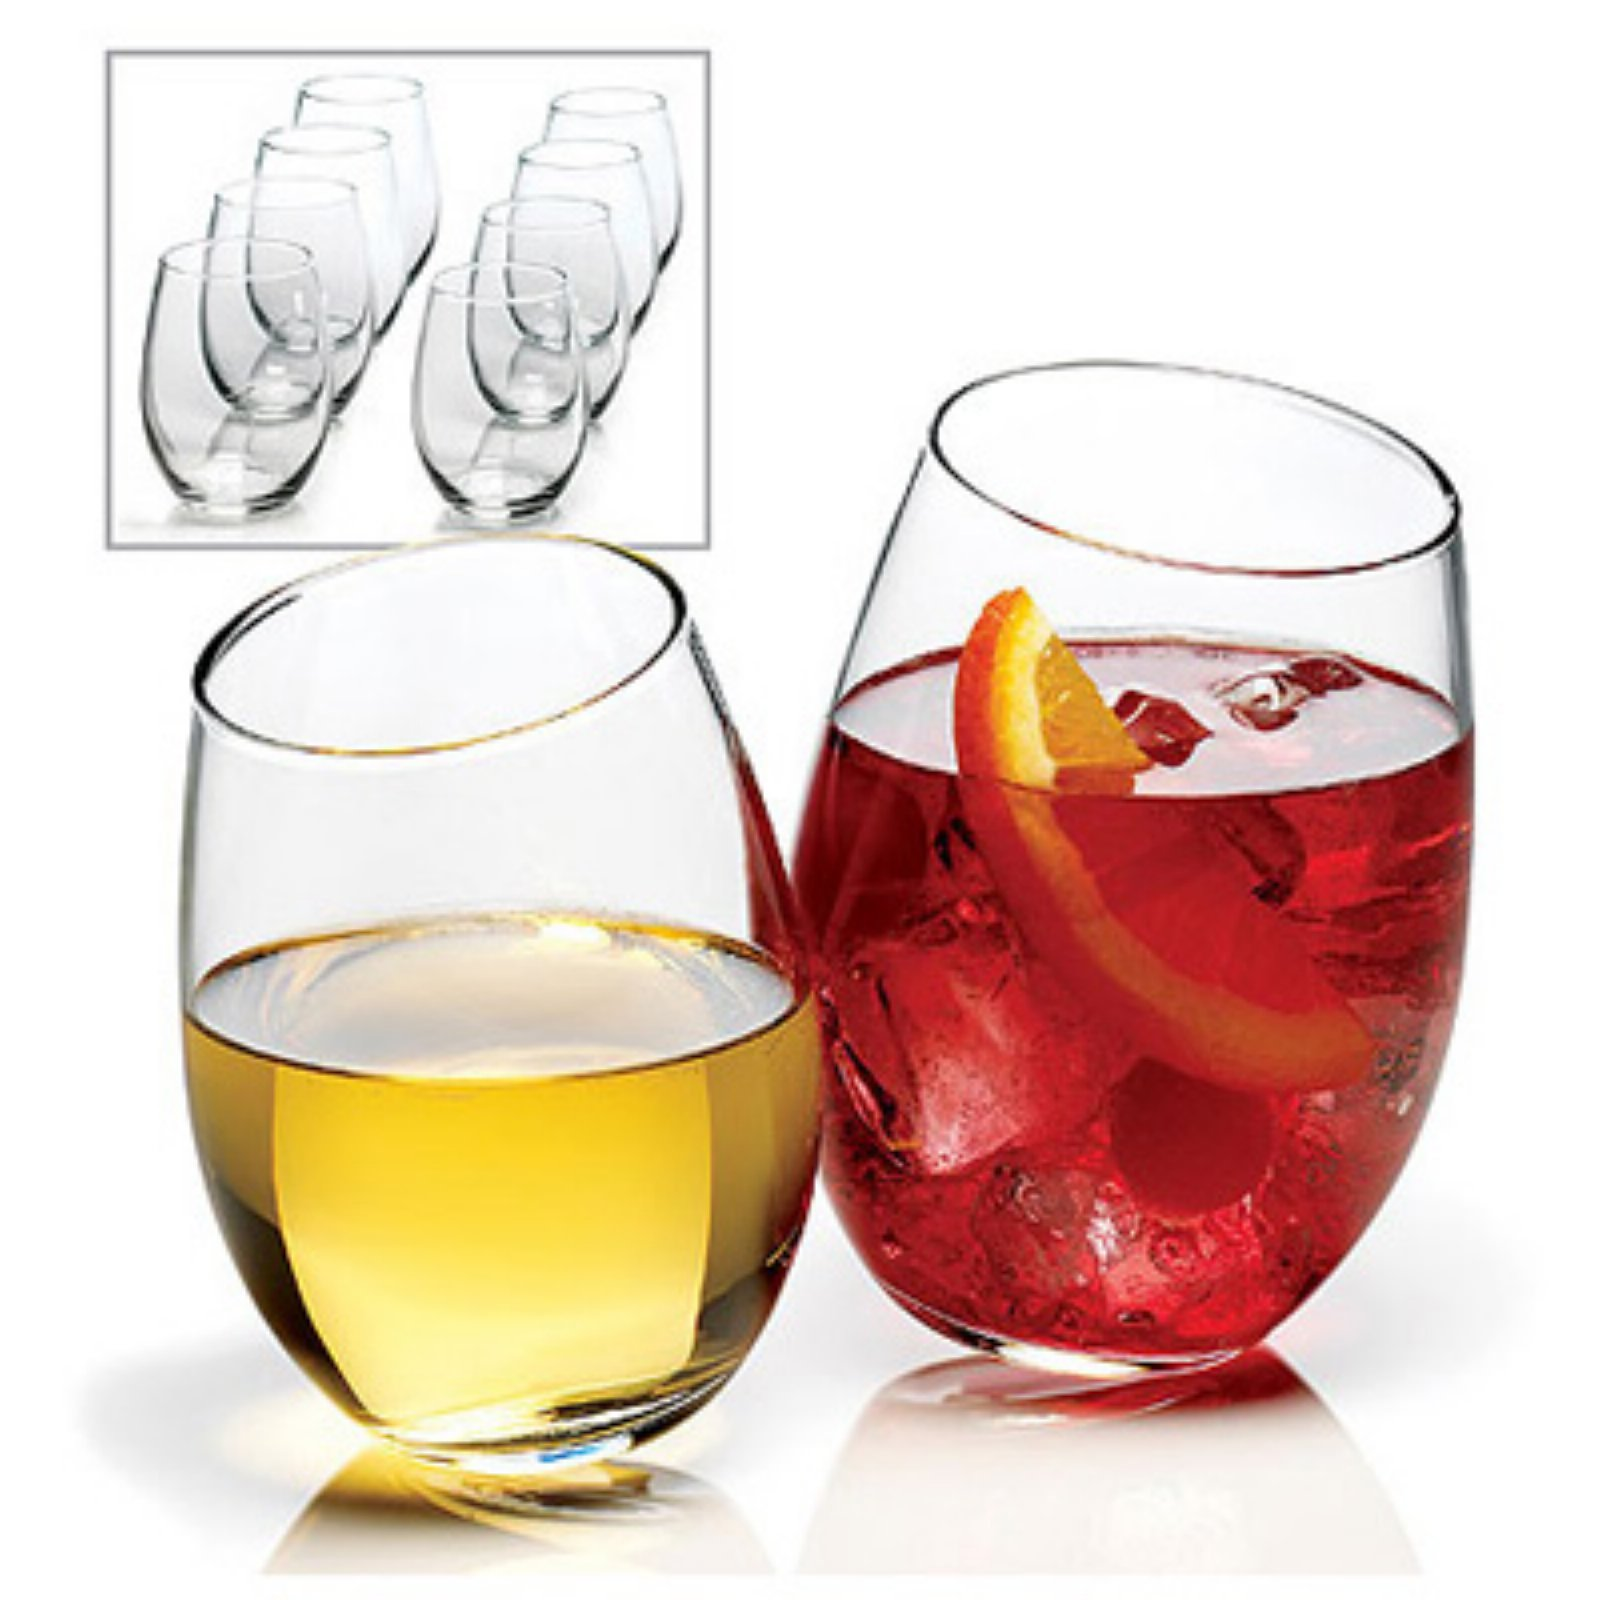 Anchor Hocking 8-piece Stemless Wine Glass Set